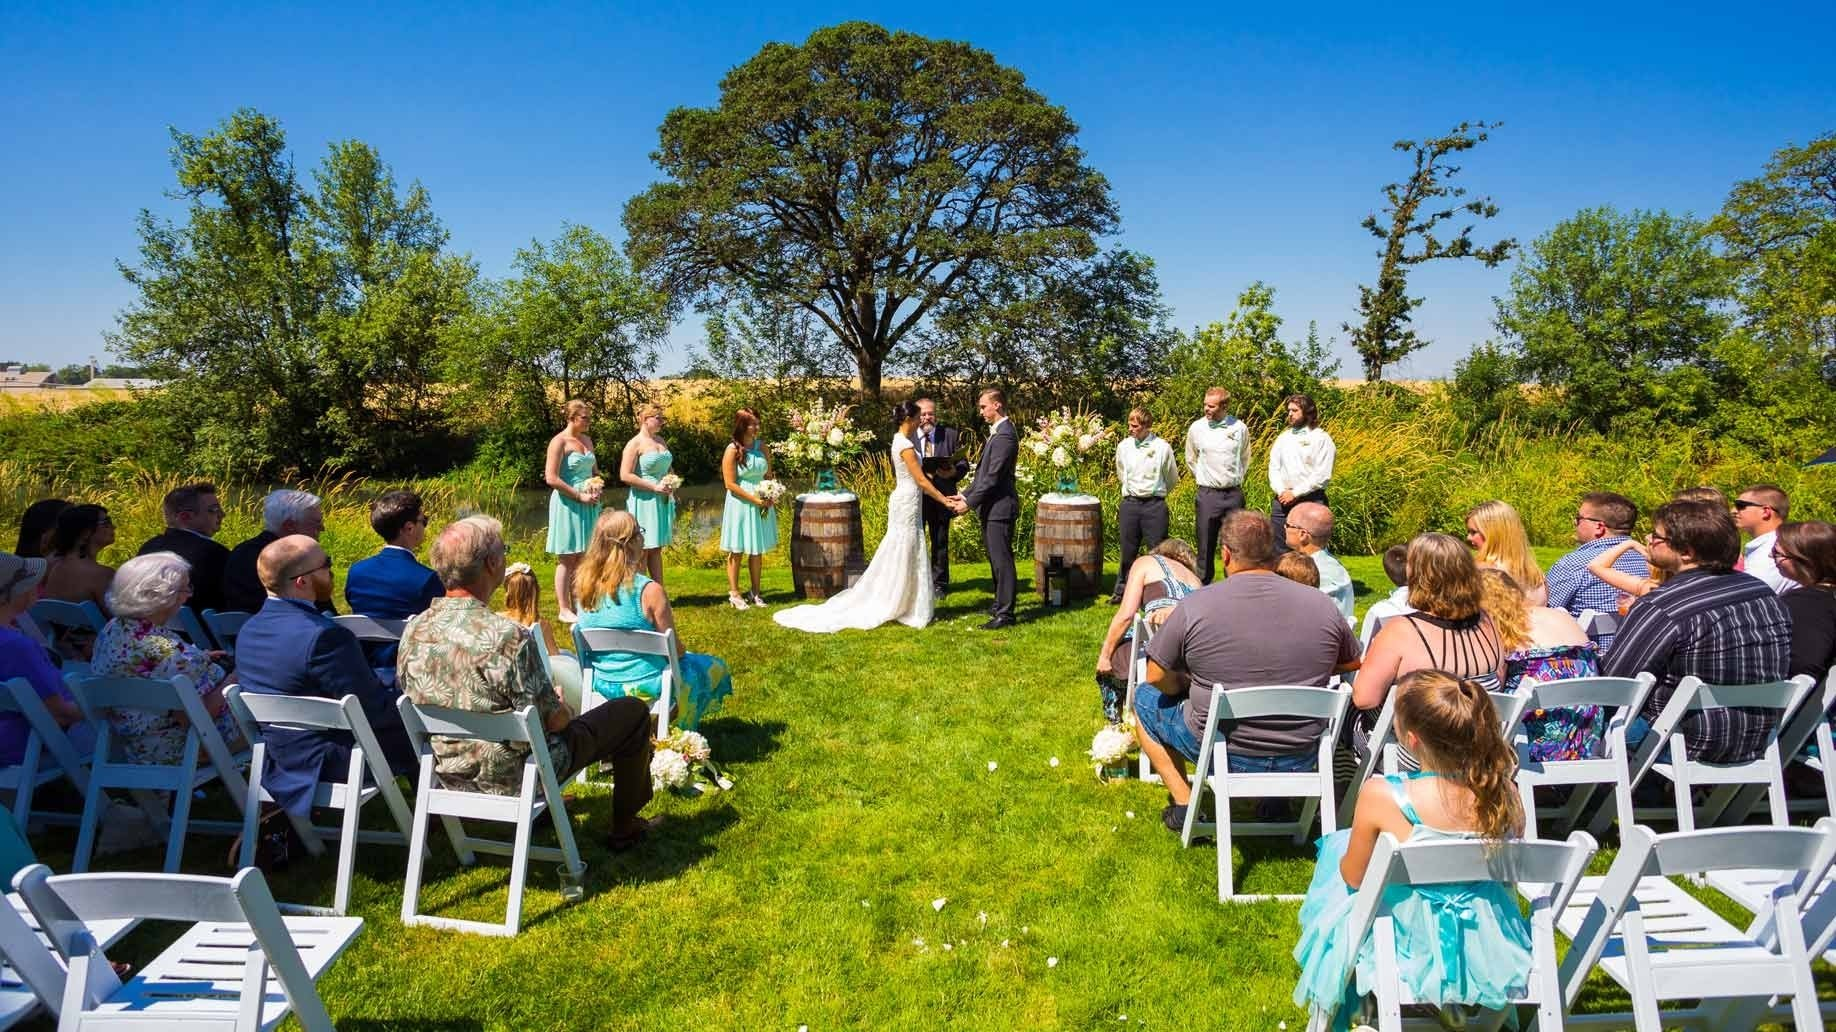 10 Wonderful Non Traditional Wedding Ceremony Ideas 16 cheap budget wedding venue ideas for the ceremony reception 4 2021